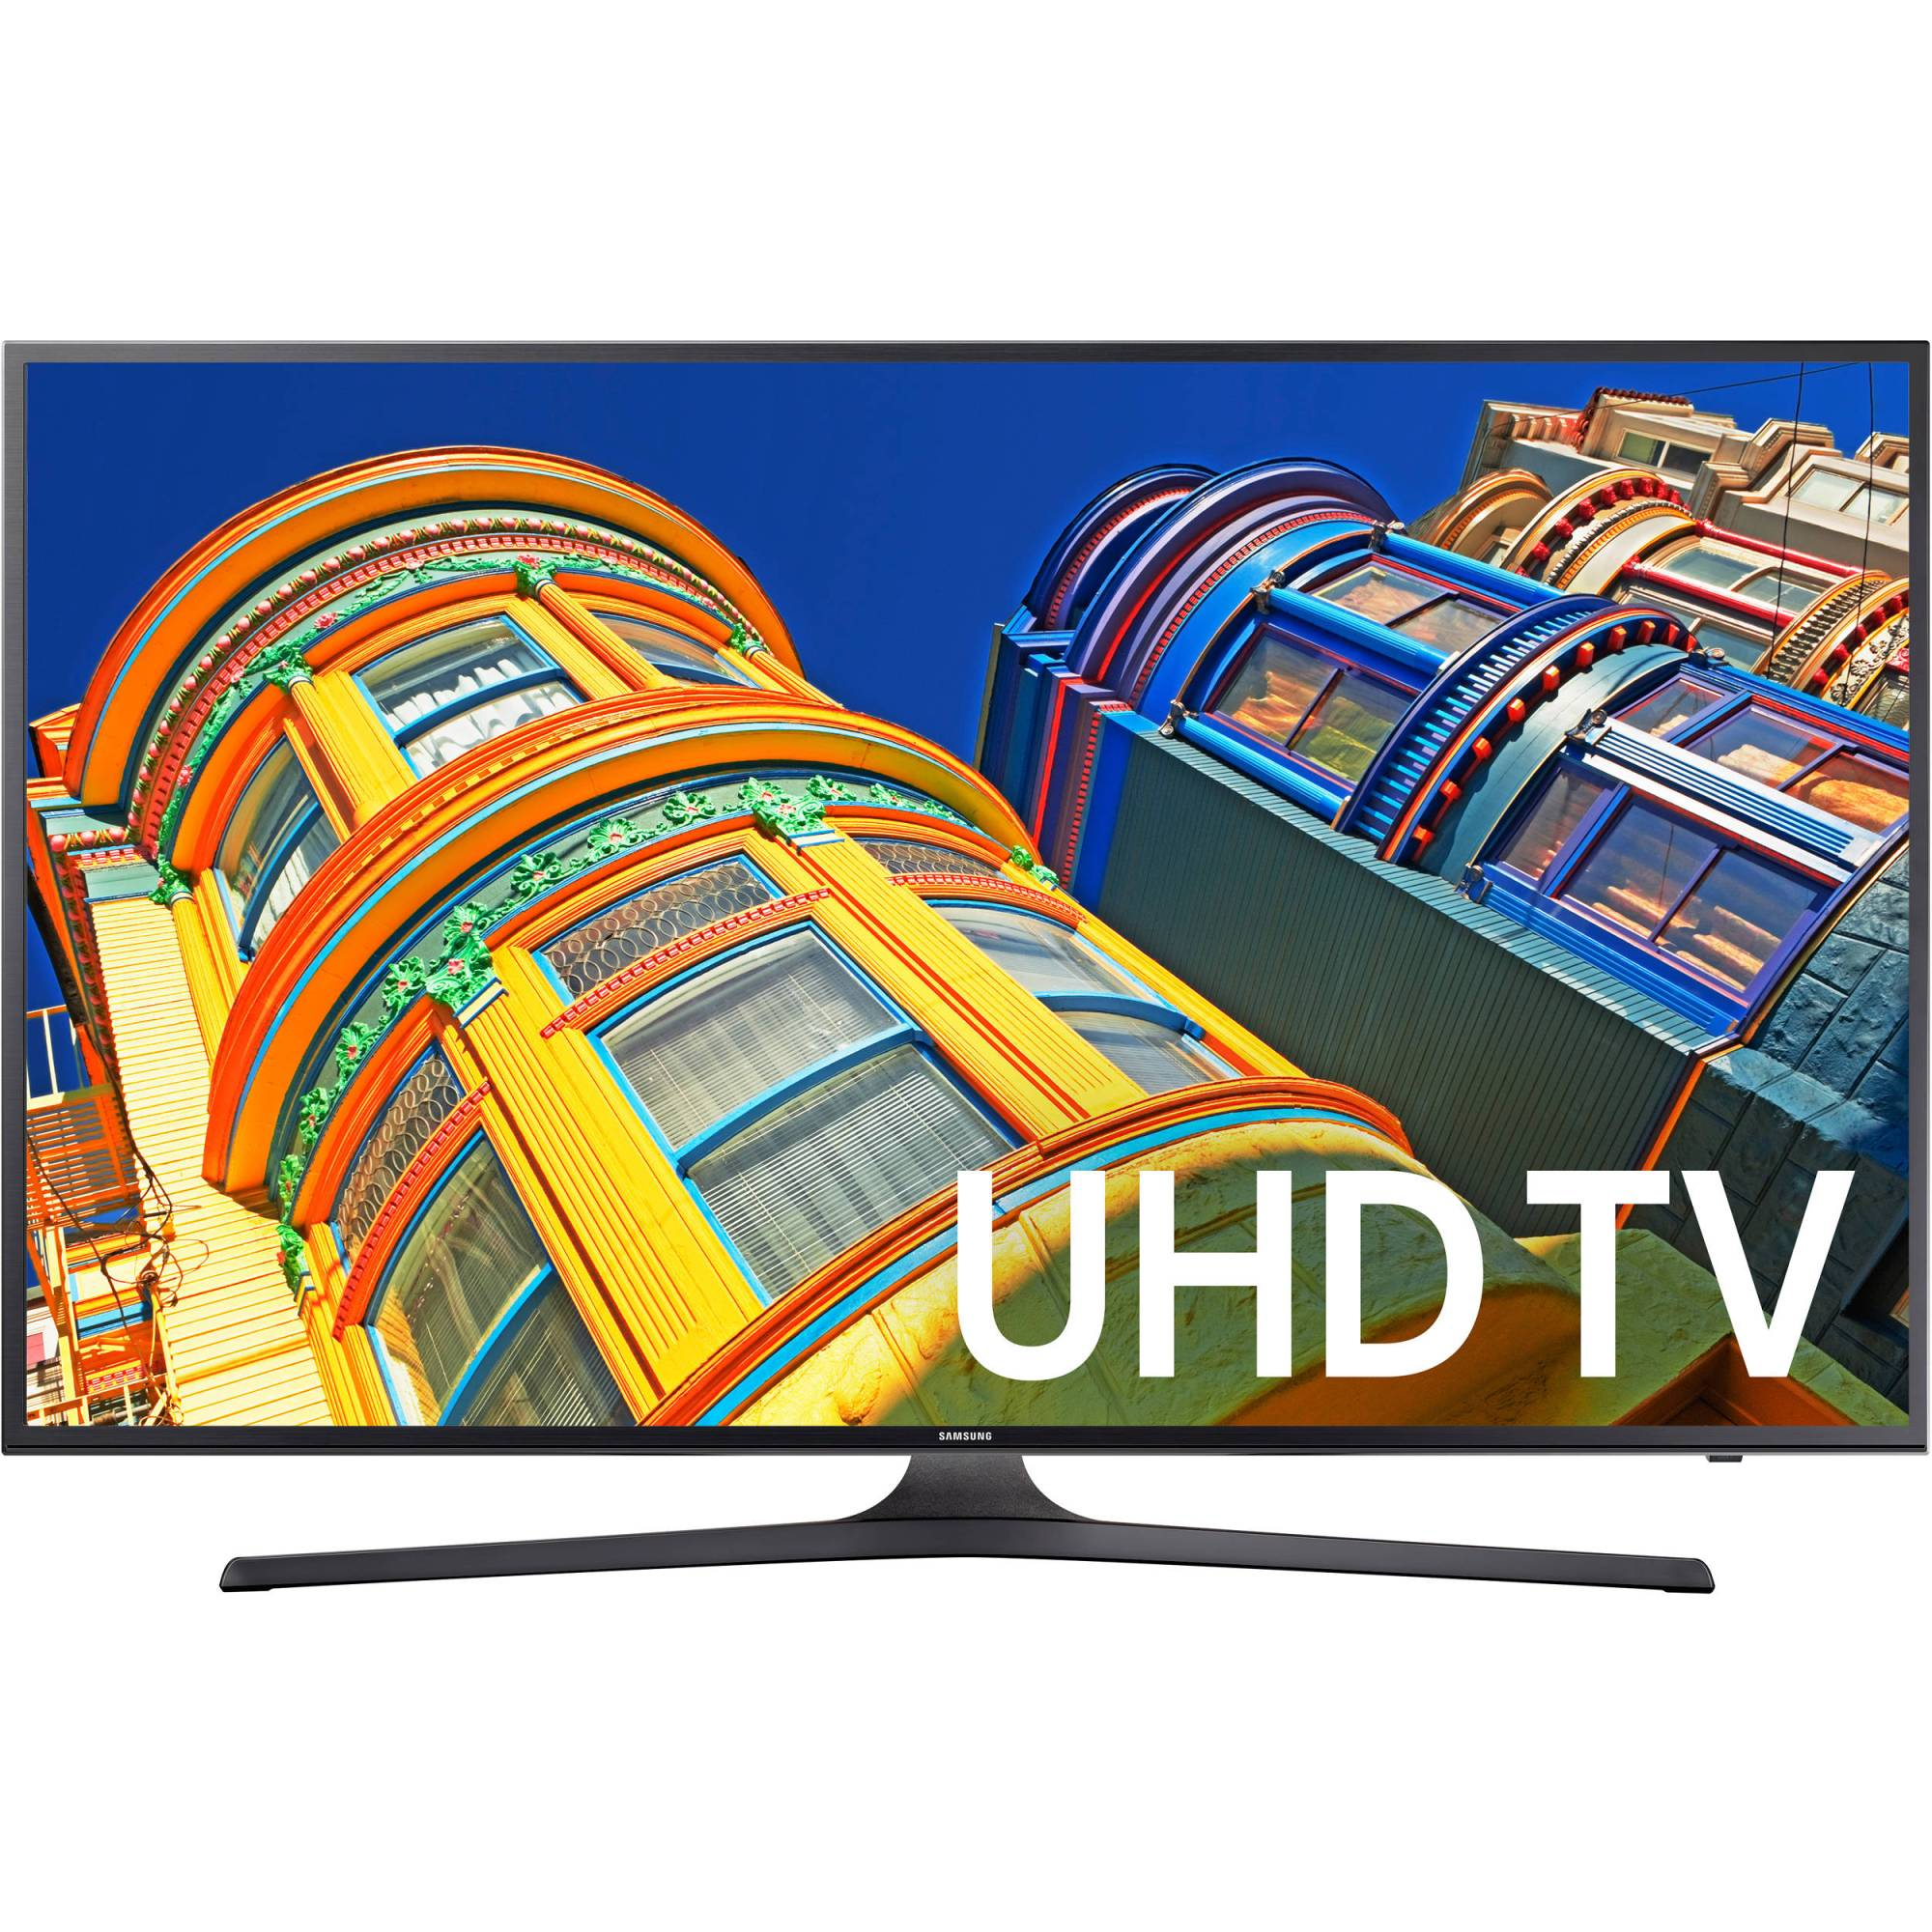 hight resolution of samsung ku6300 series 55 class uhd smart led tv